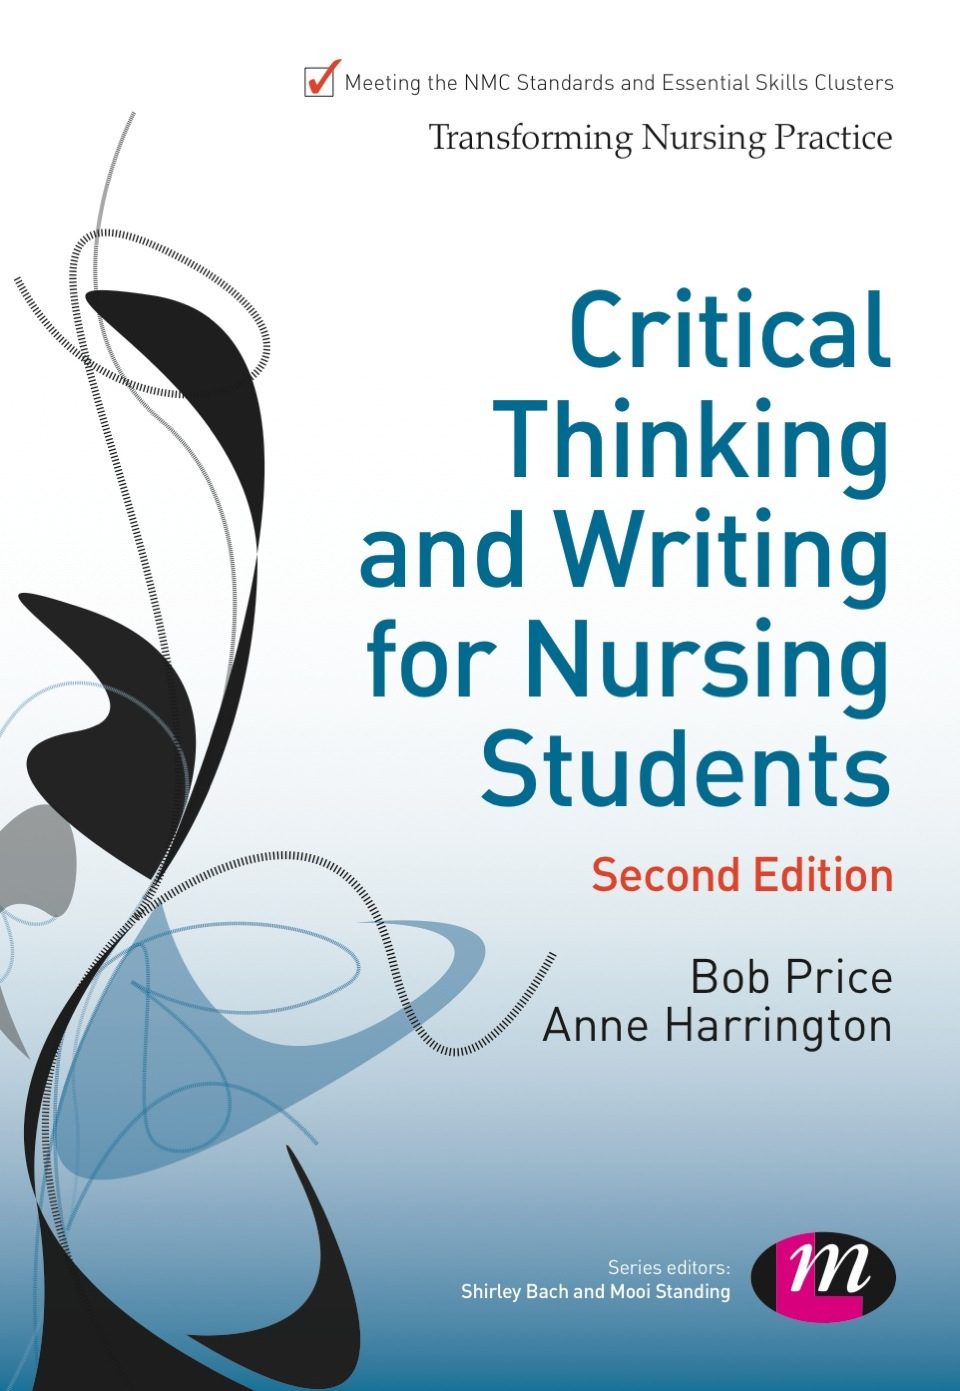 critical thinking skills for student nurses Nursing is an applied science, and to apply knowledge learned and develop critical thinking skills to make clinical decisions, the student should actively participate in all clinical.